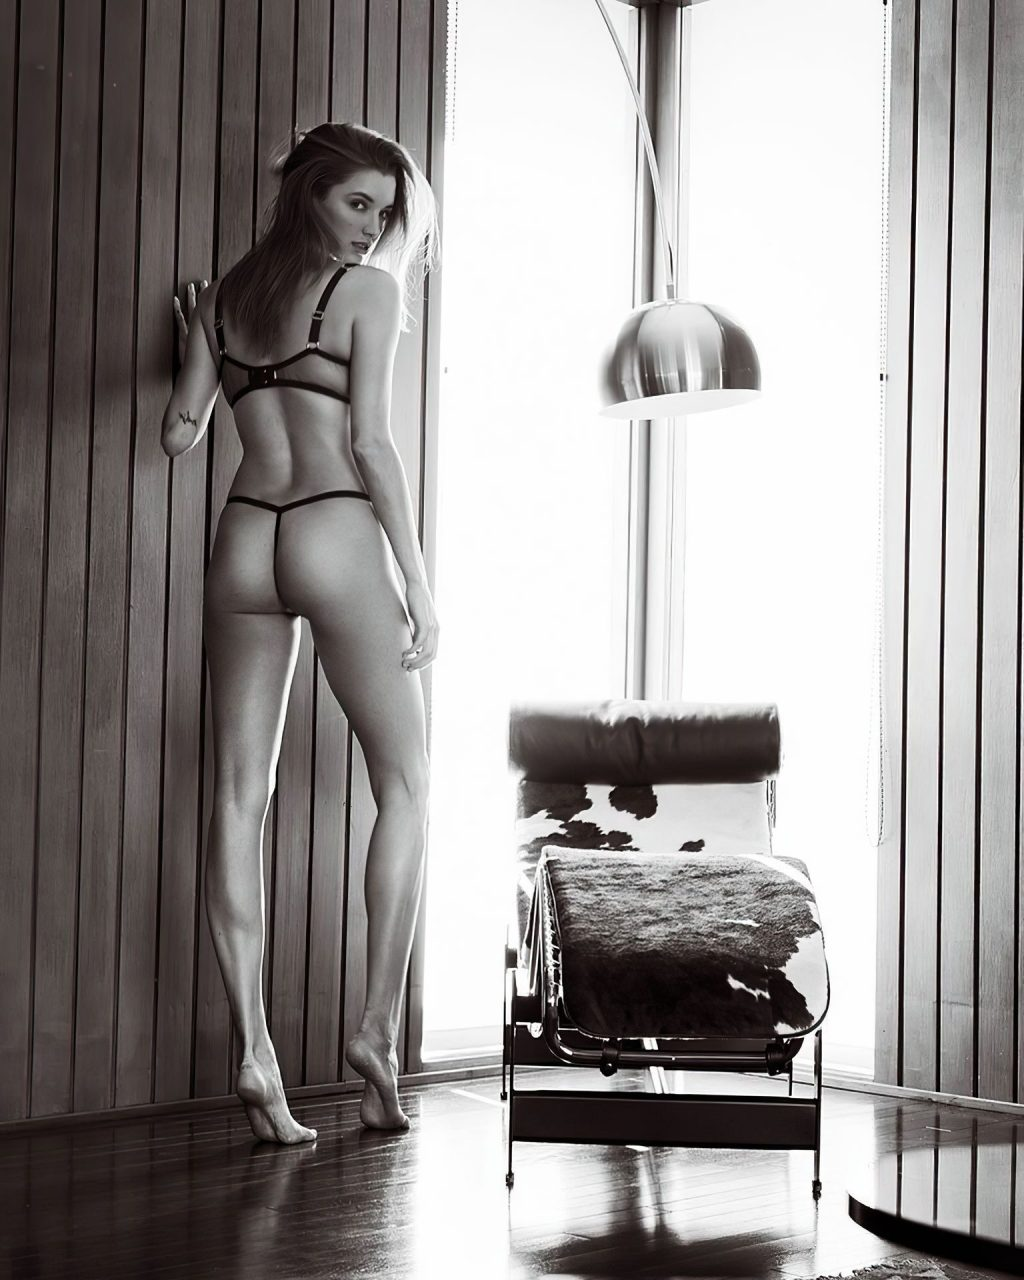 Alyssa Arce Looks Hot in Lingerie, Even Hotter Without It